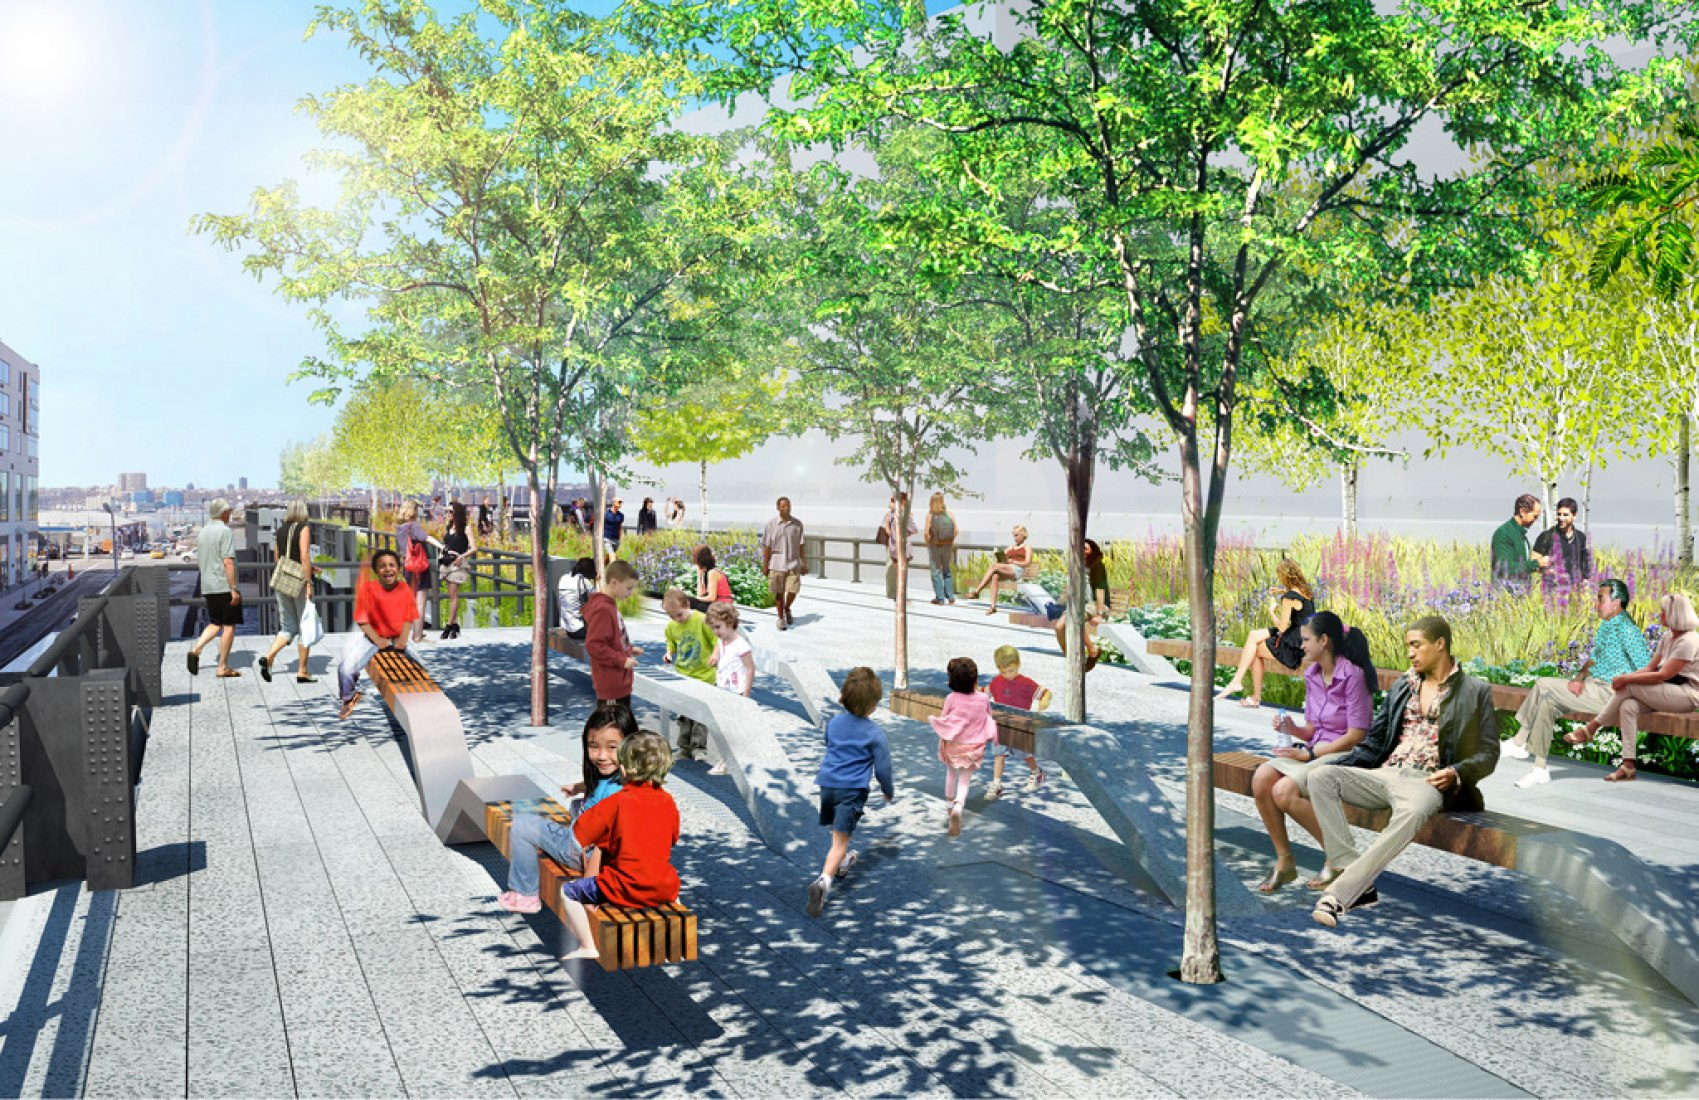 Rendering, Grasslands grove. New York High Line by Diller Scofidio + Renfro. Click above to see larger image.